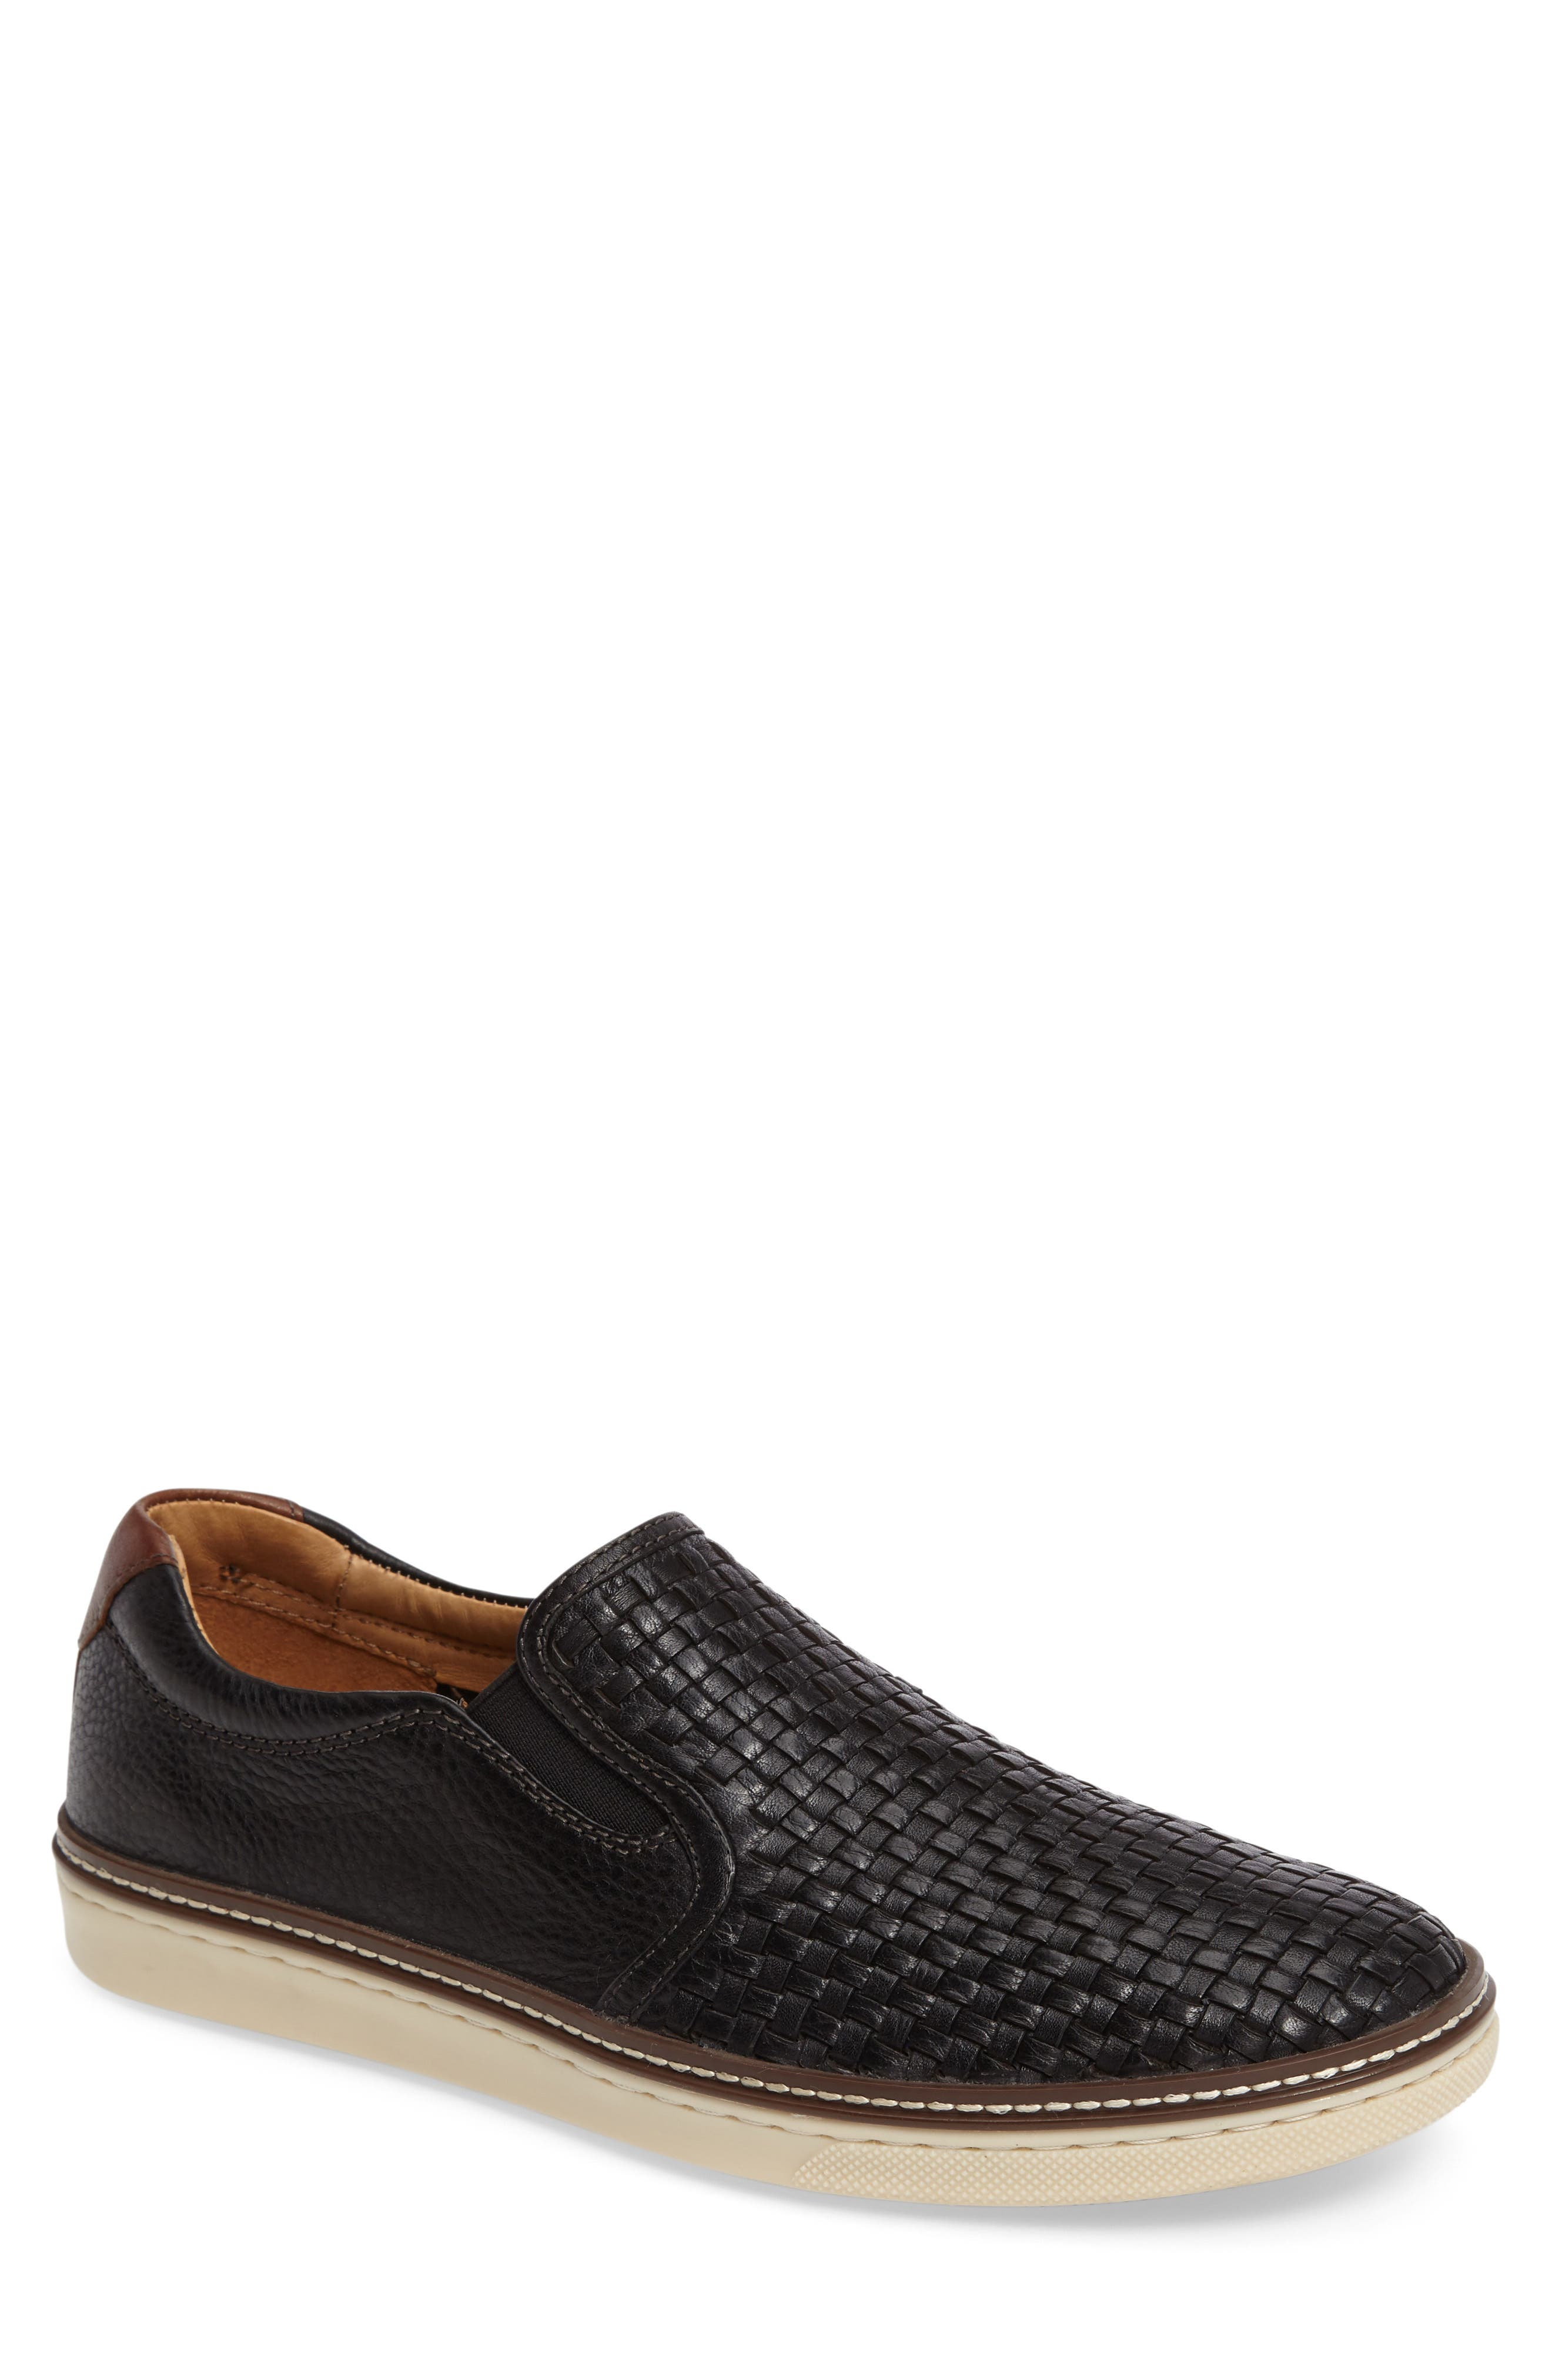 JOHNSTON & MURPHY, McGuffey Woven Slip-On Sneaker, Main thumbnail 1, color, BLACK LEATHER